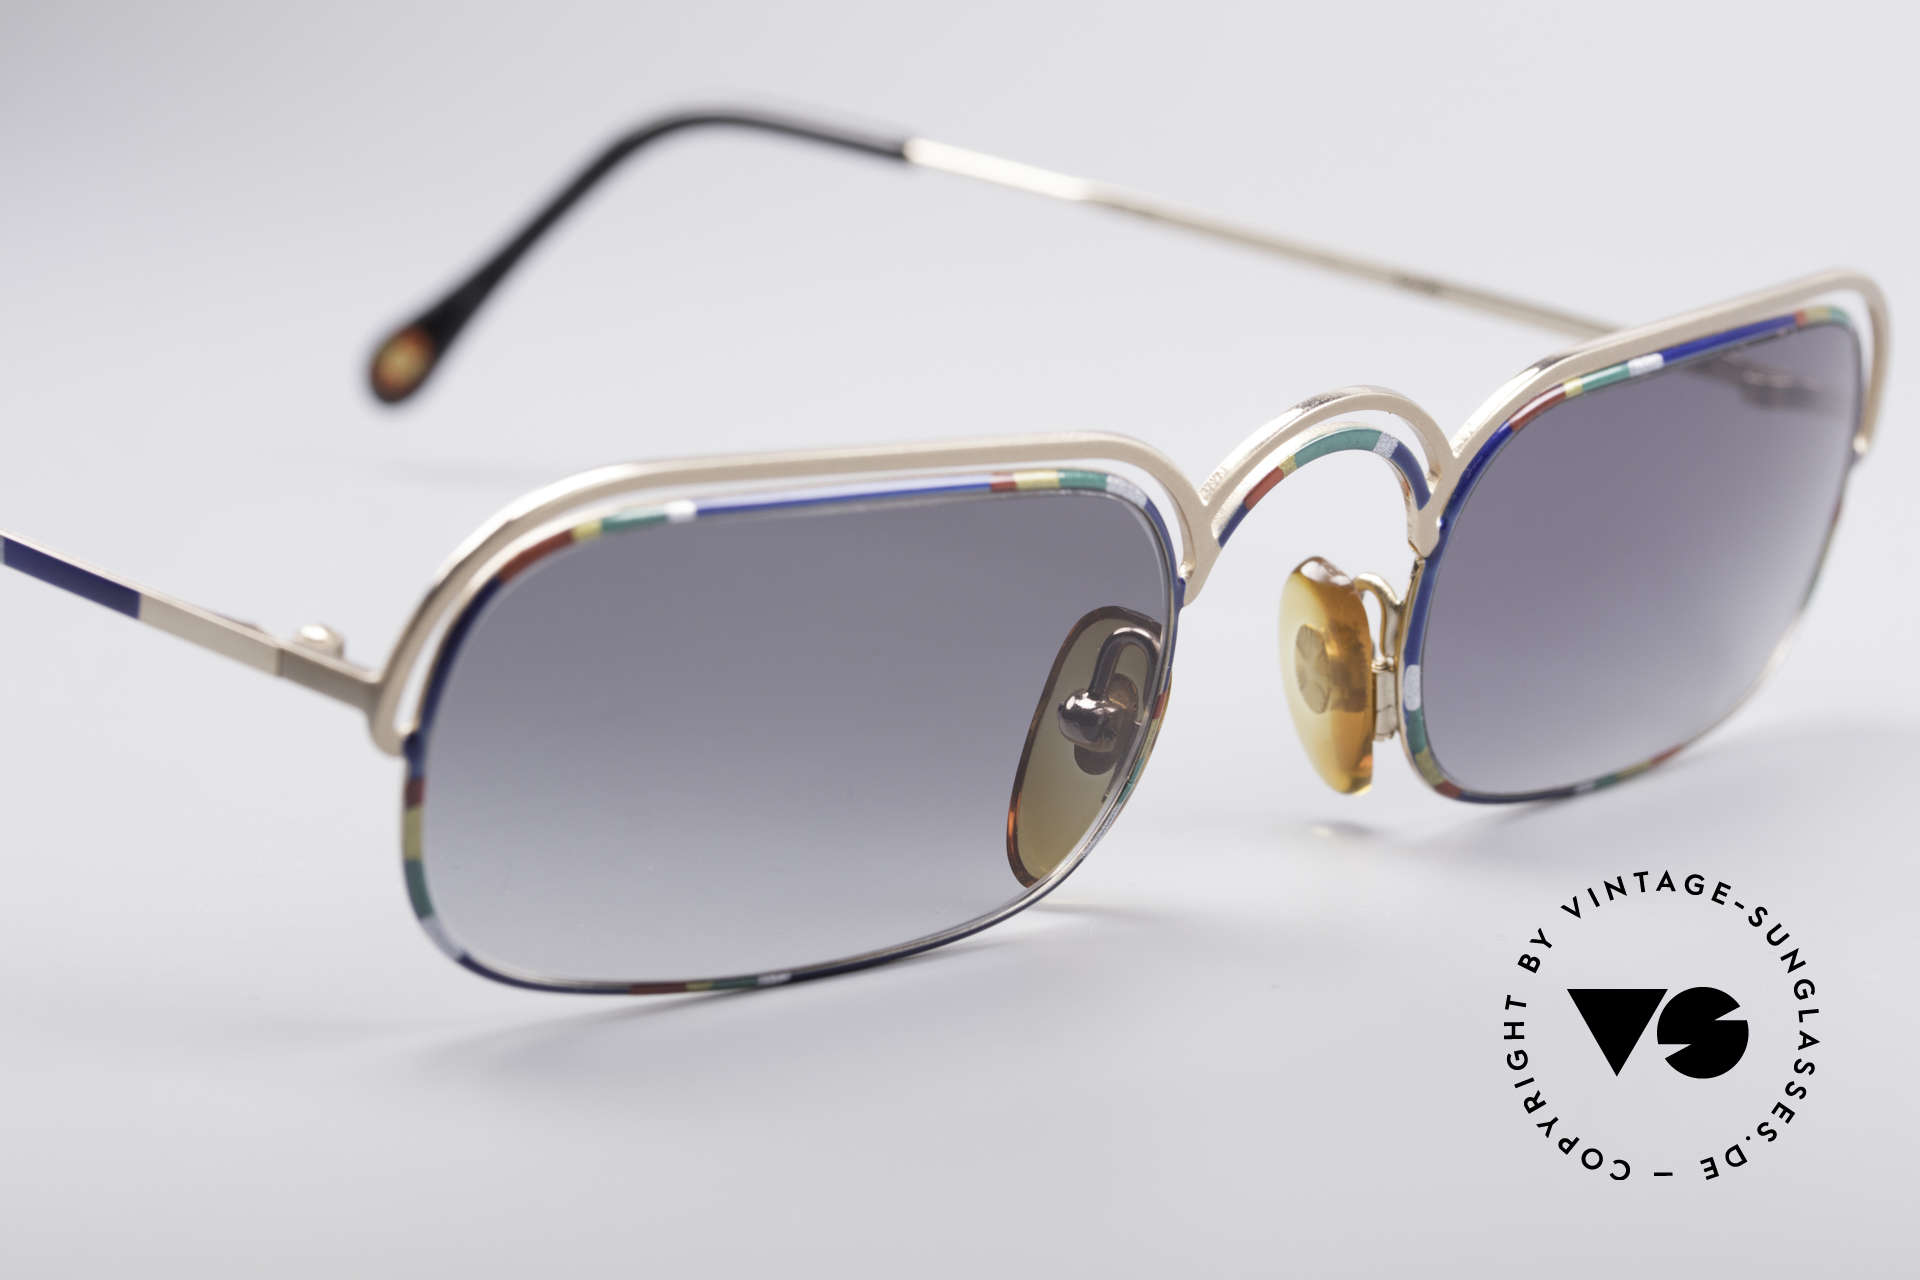 Casanova DV14 Dolce Vita Sunglasses, colourful and curved metal frame in premium quality, Made for Men and Women